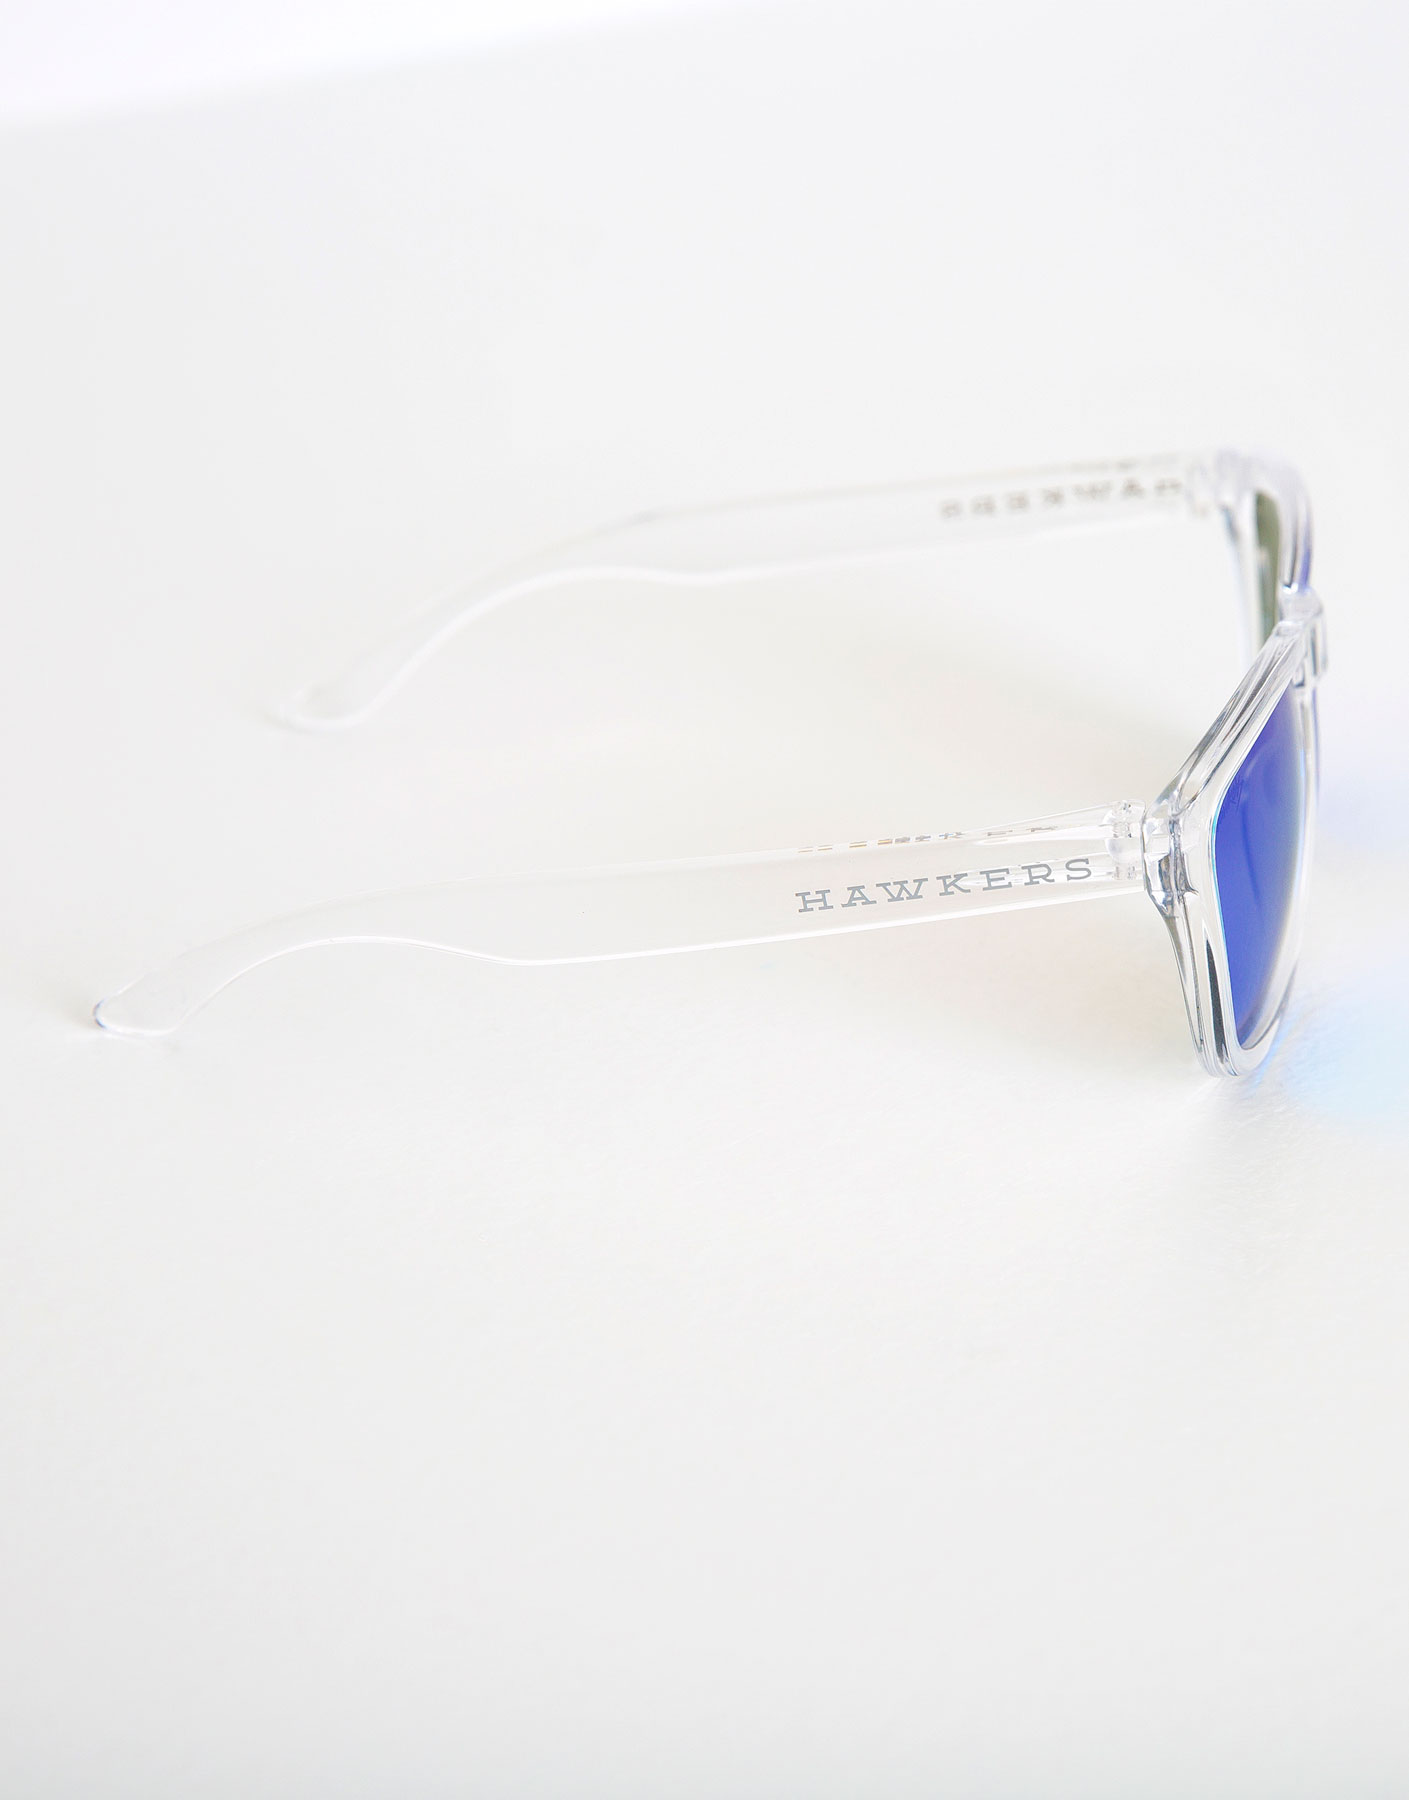 Lunettes de soleil hawkers air clear blue one